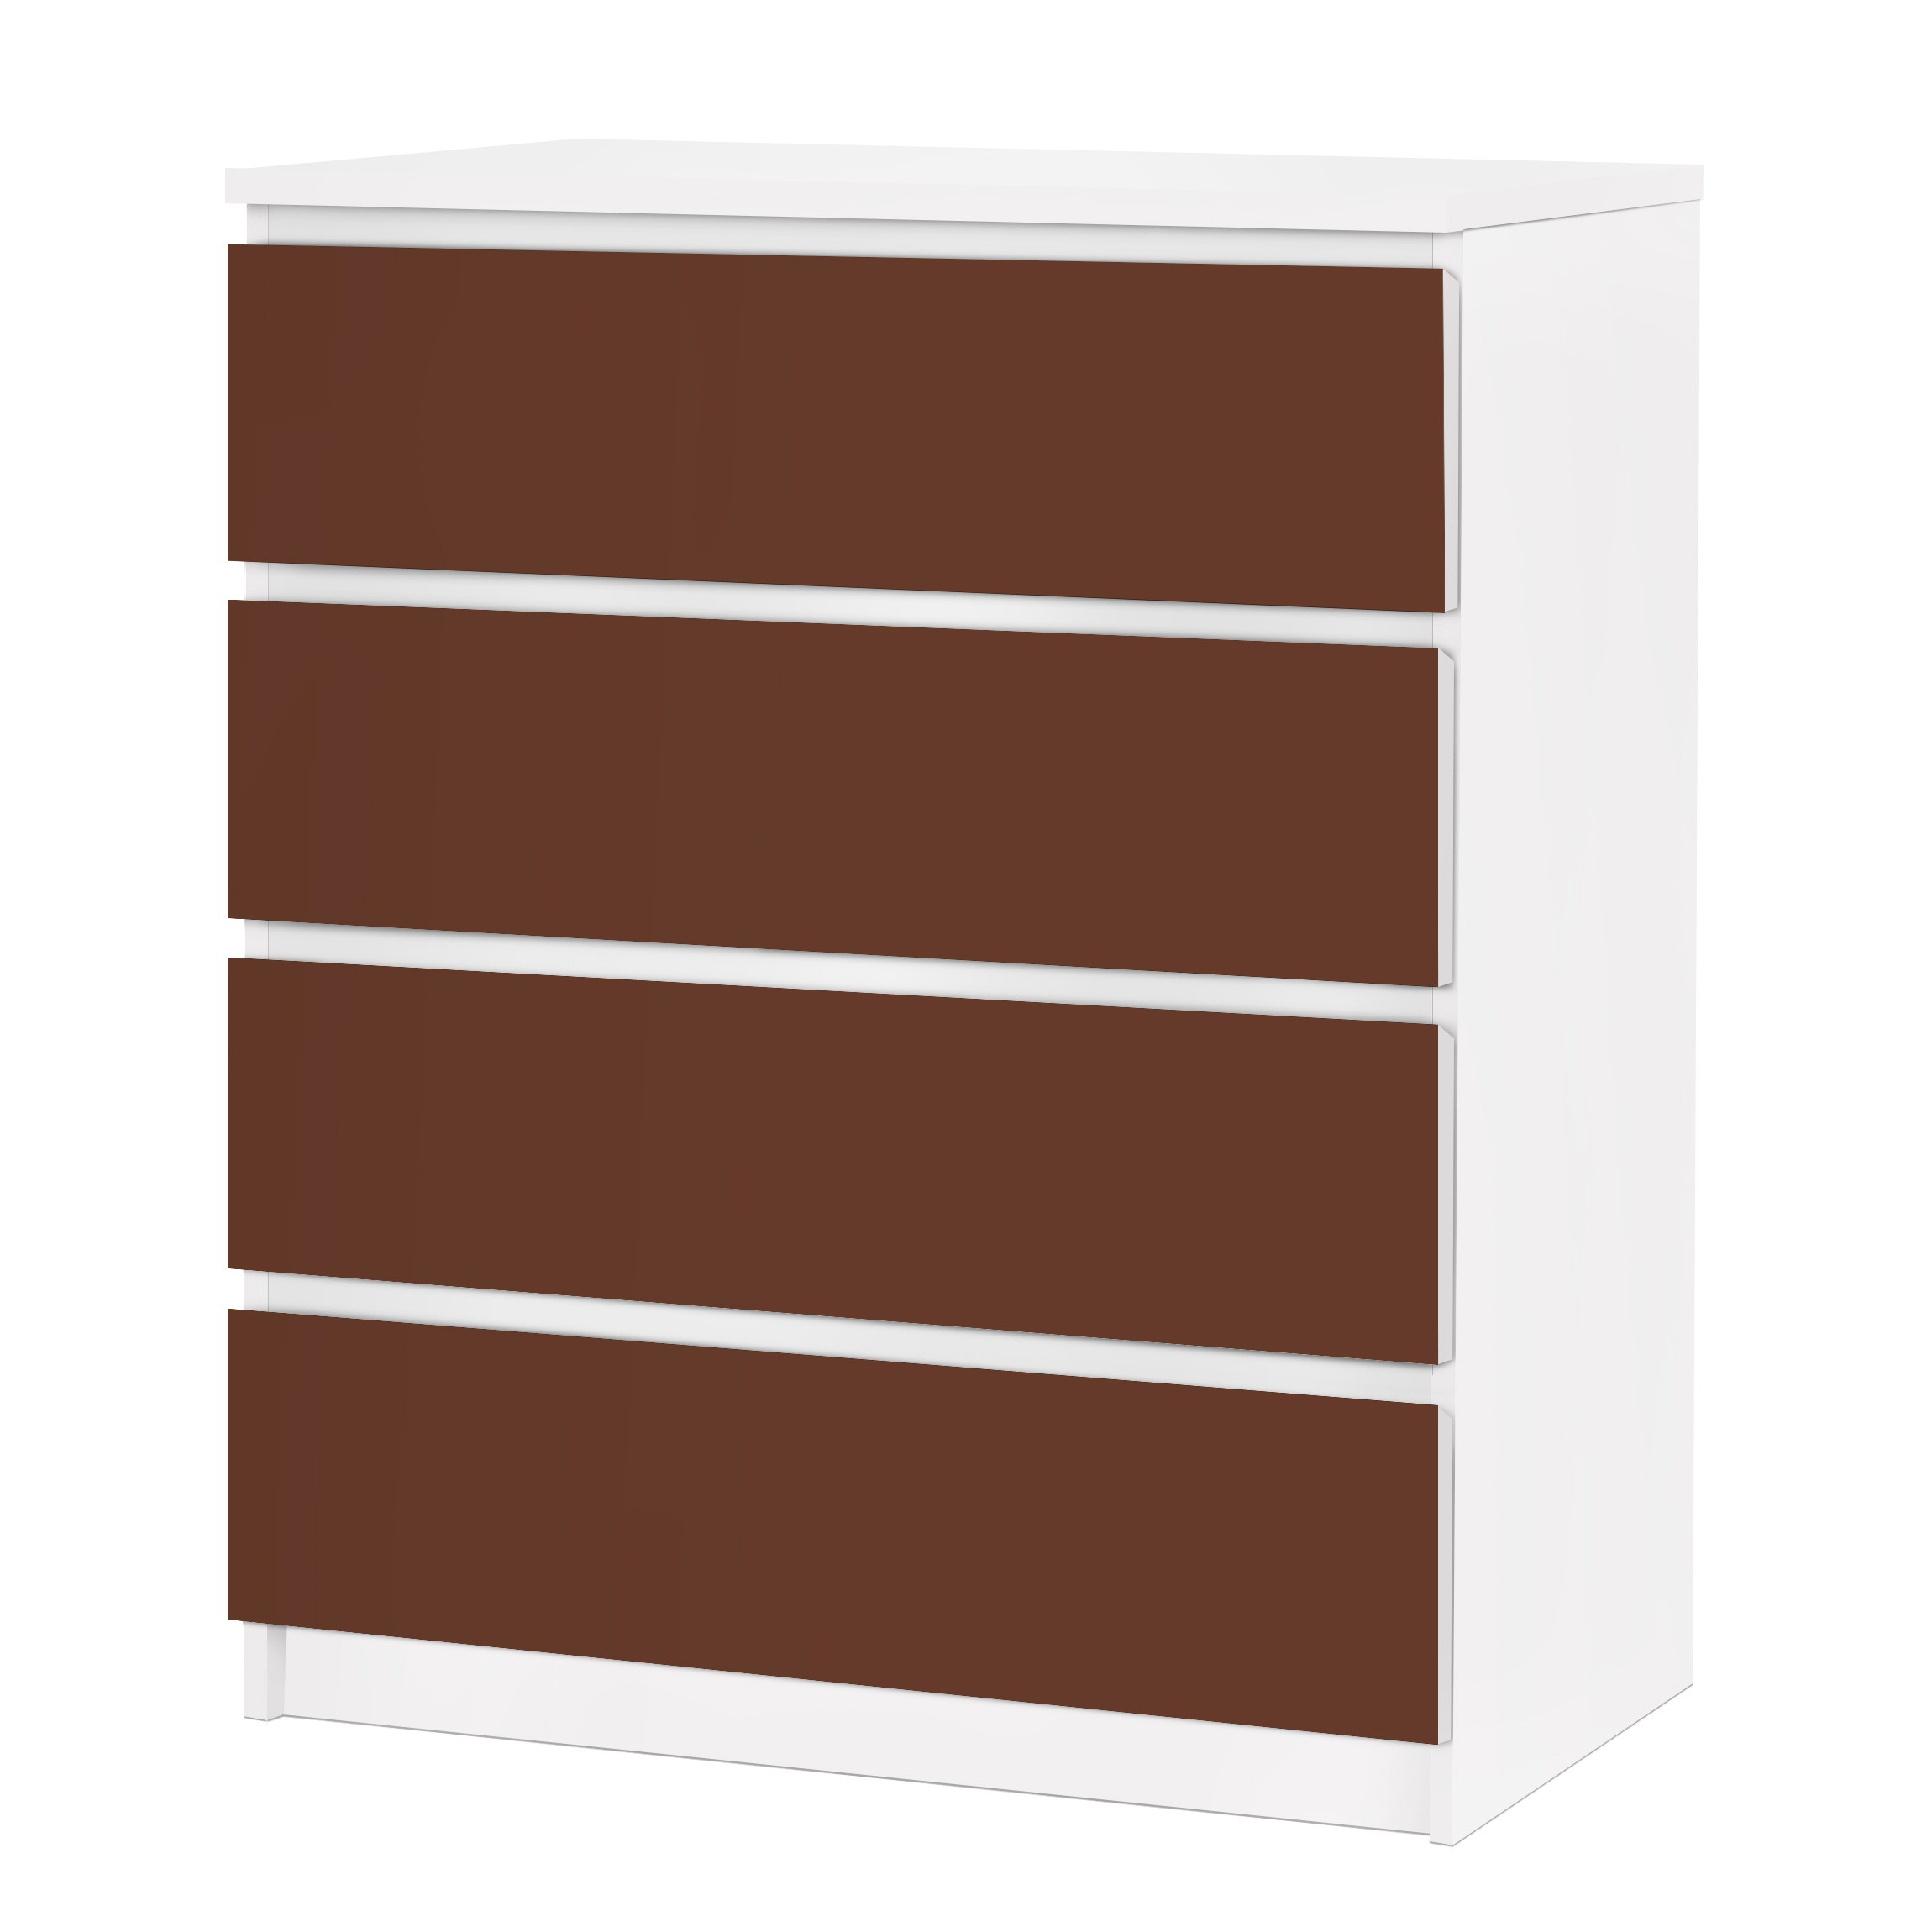 m belfolie f r ikea malm kommode selbstklebende folie colour chocolate. Black Bedroom Furniture Sets. Home Design Ideas